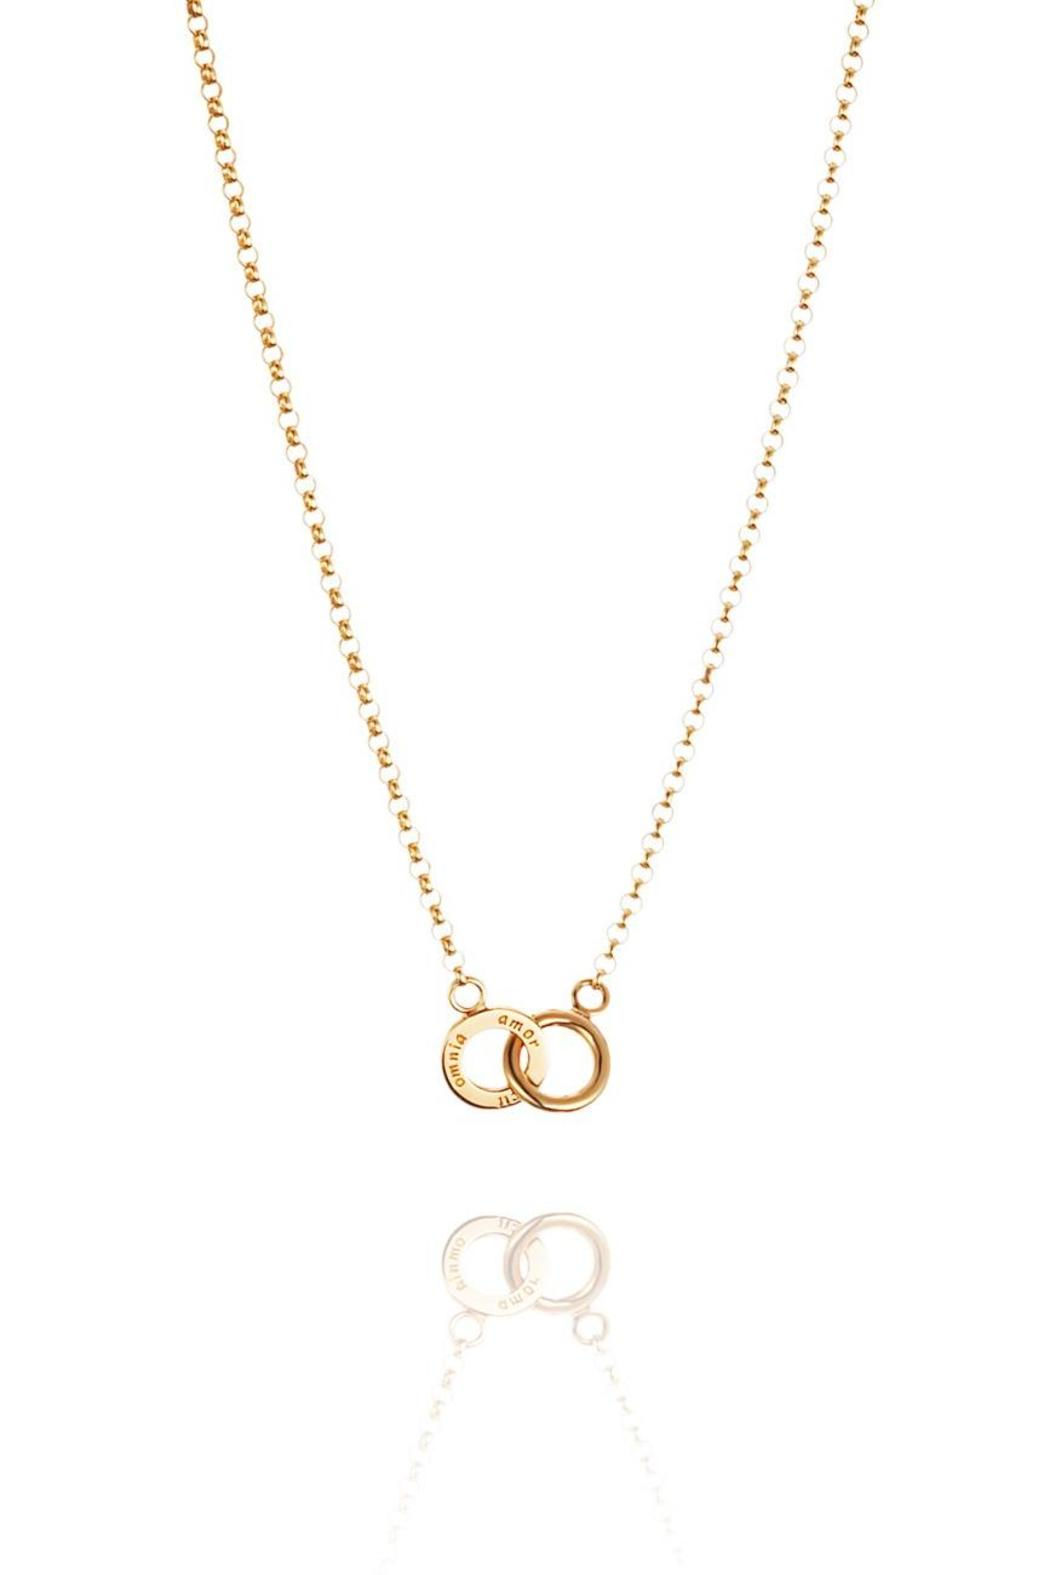 twosome necklace efva attling